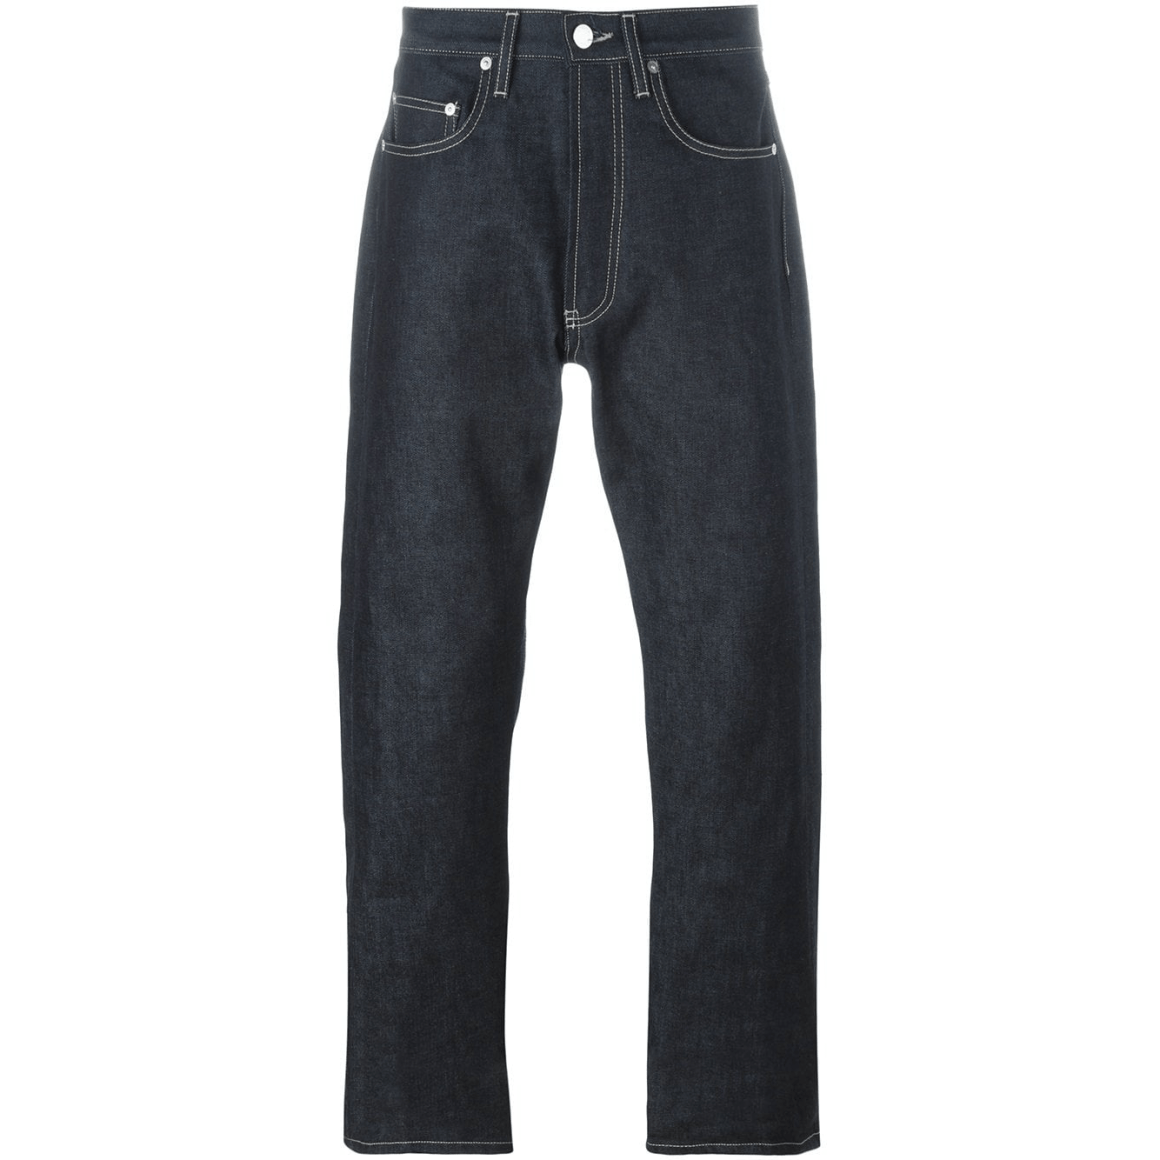 E. Tautz Loose Fit Jeans